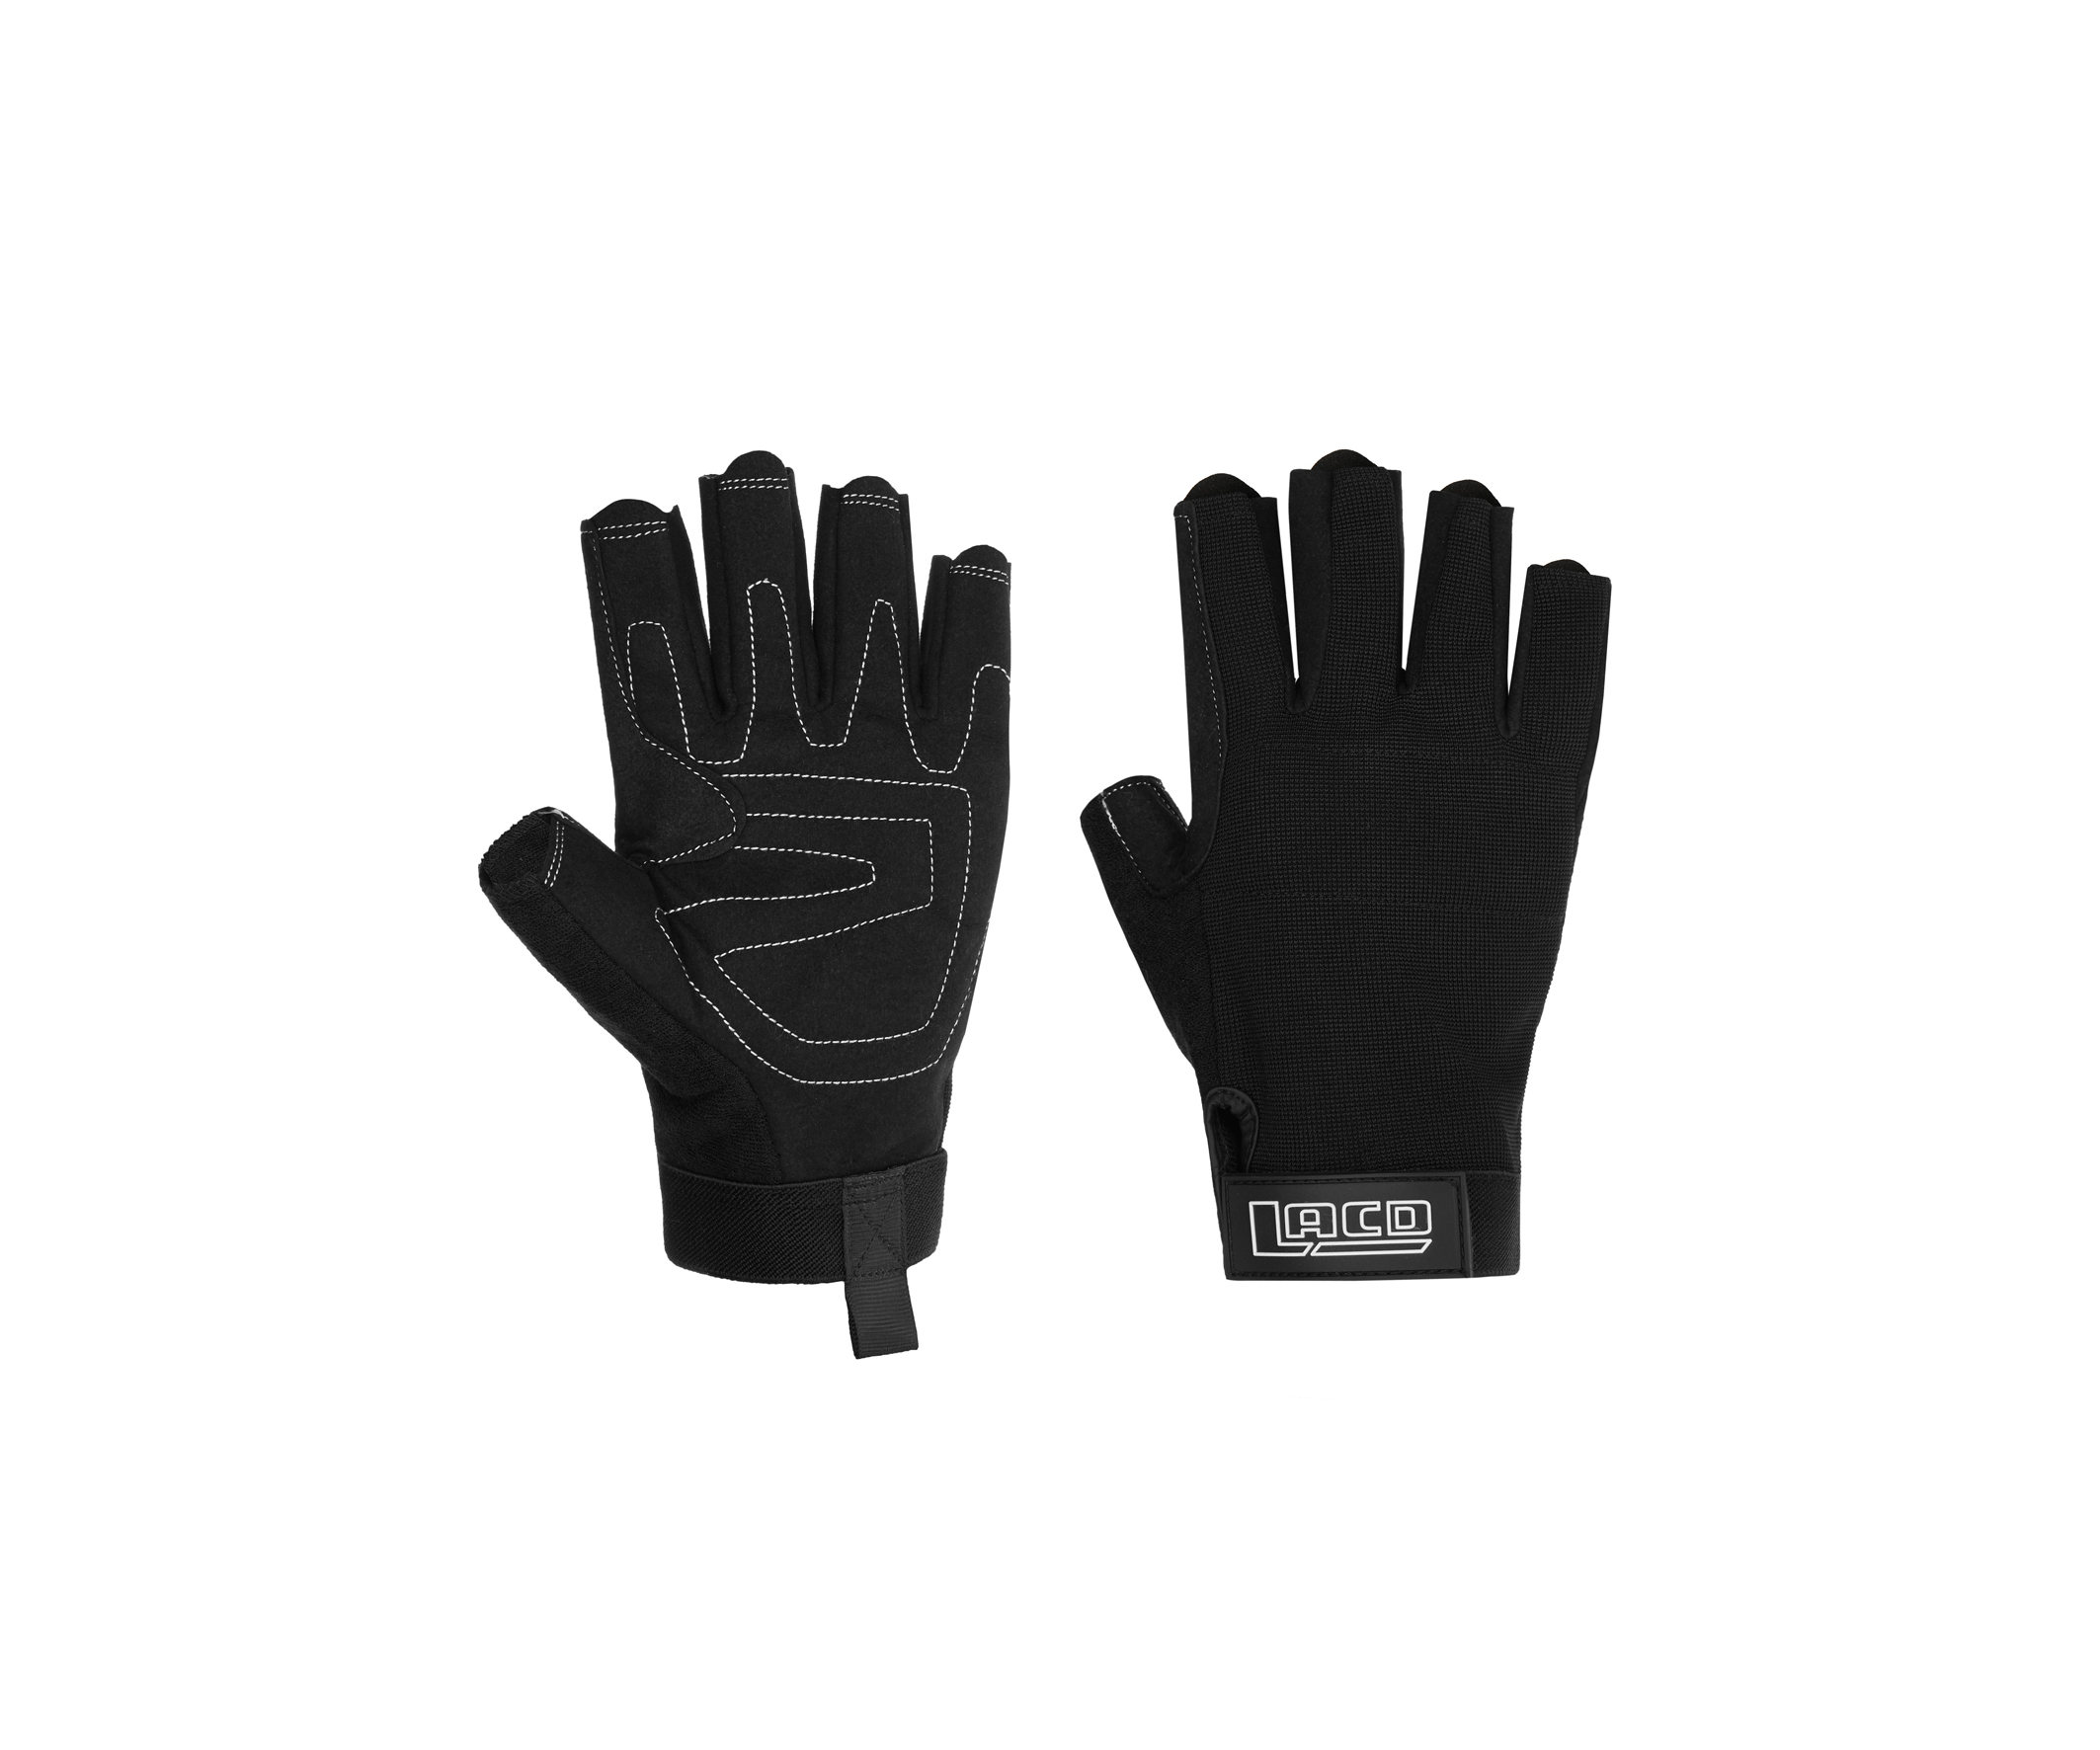 LACD Via Ferrata Gloves Pro